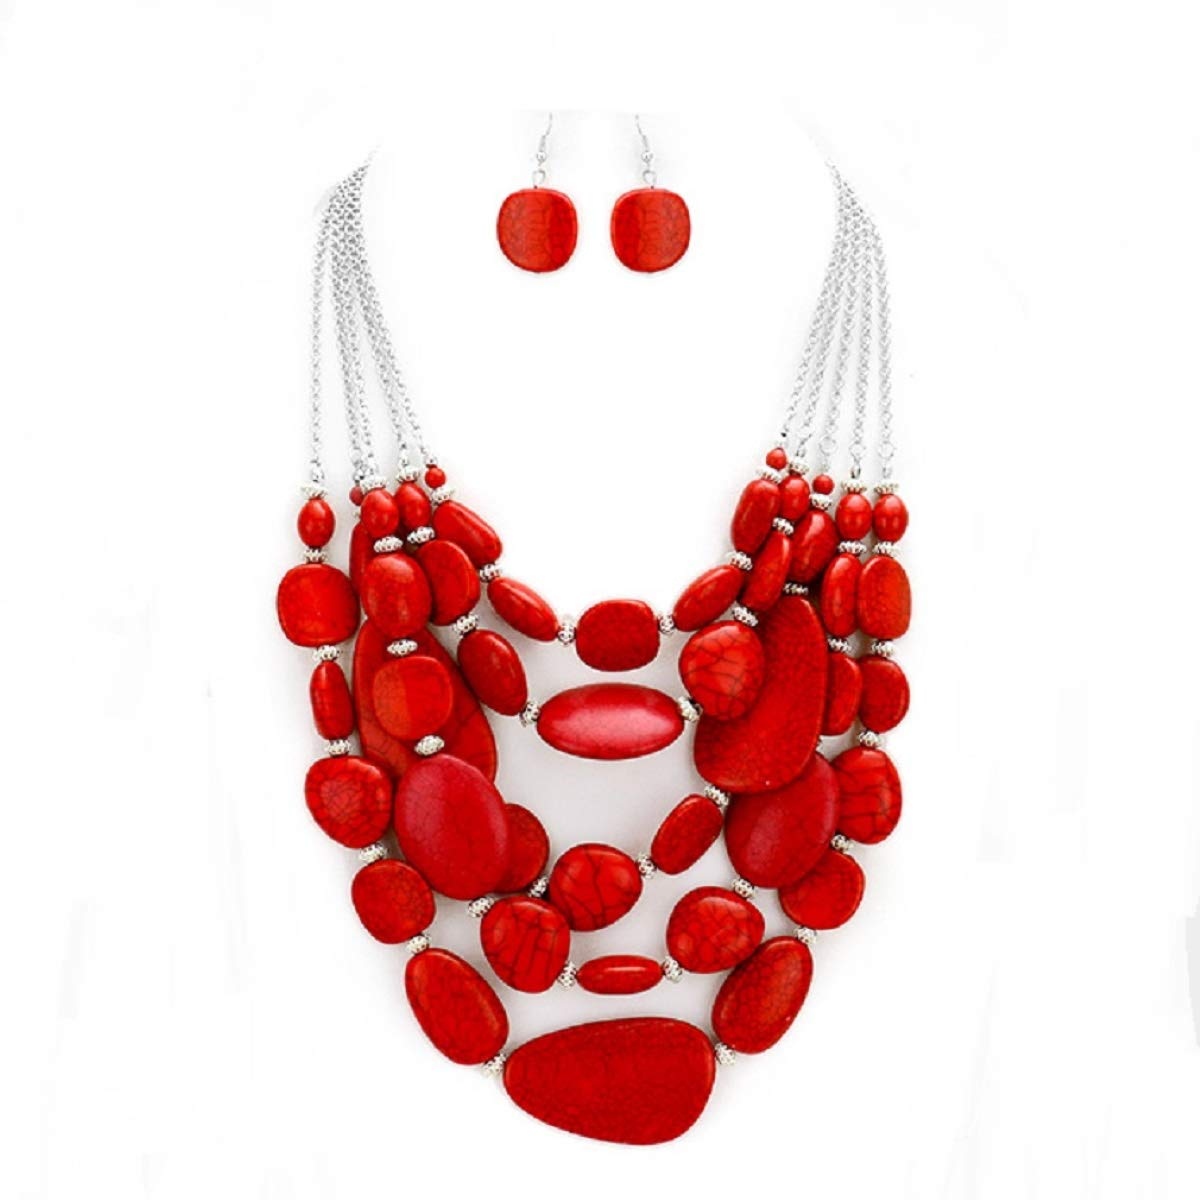 S.Uniklook Collection Chunky Statement Strands Coral Red Stone Bubble Beaded Necklace Earrings Jewelry Set for Women by S.Uniklook Collection